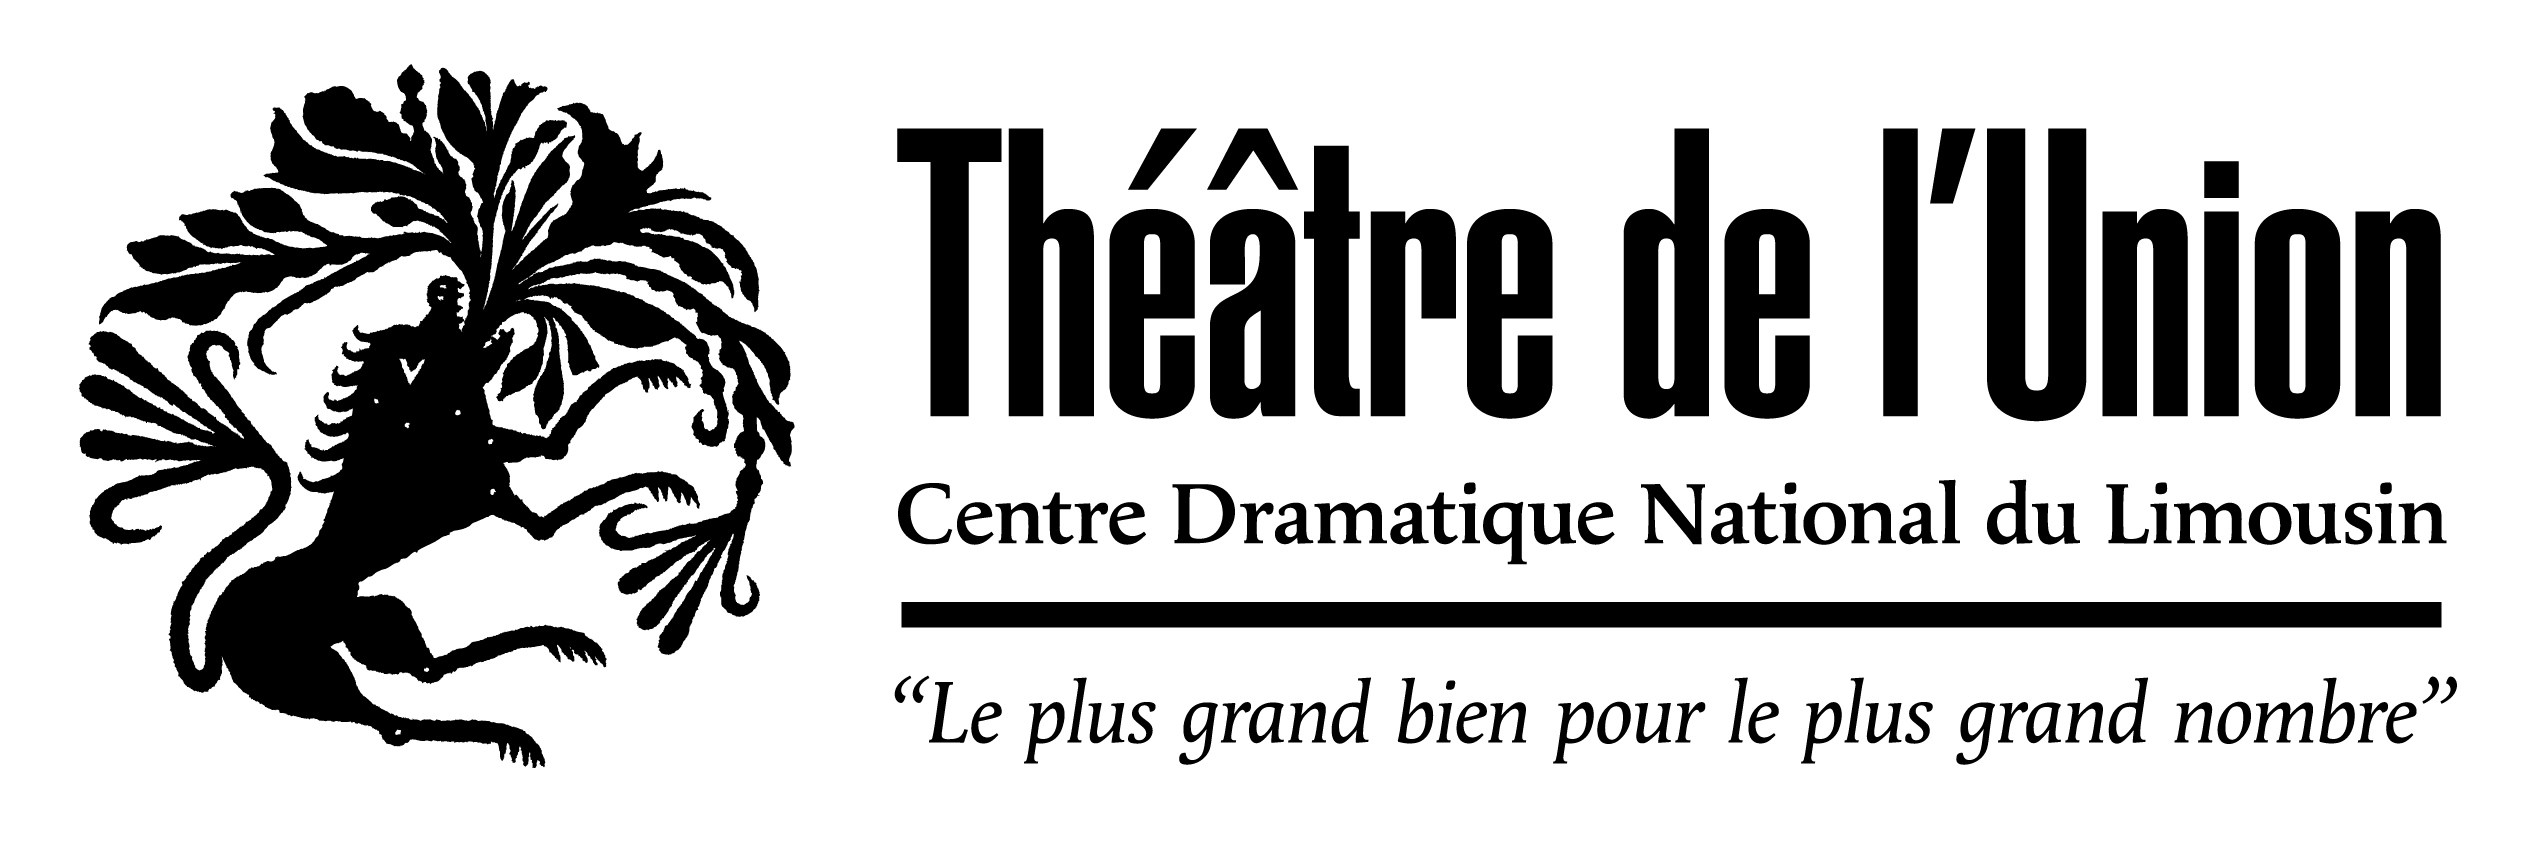 Théâtre de l'Union, Centre Dramatique National du Limousin